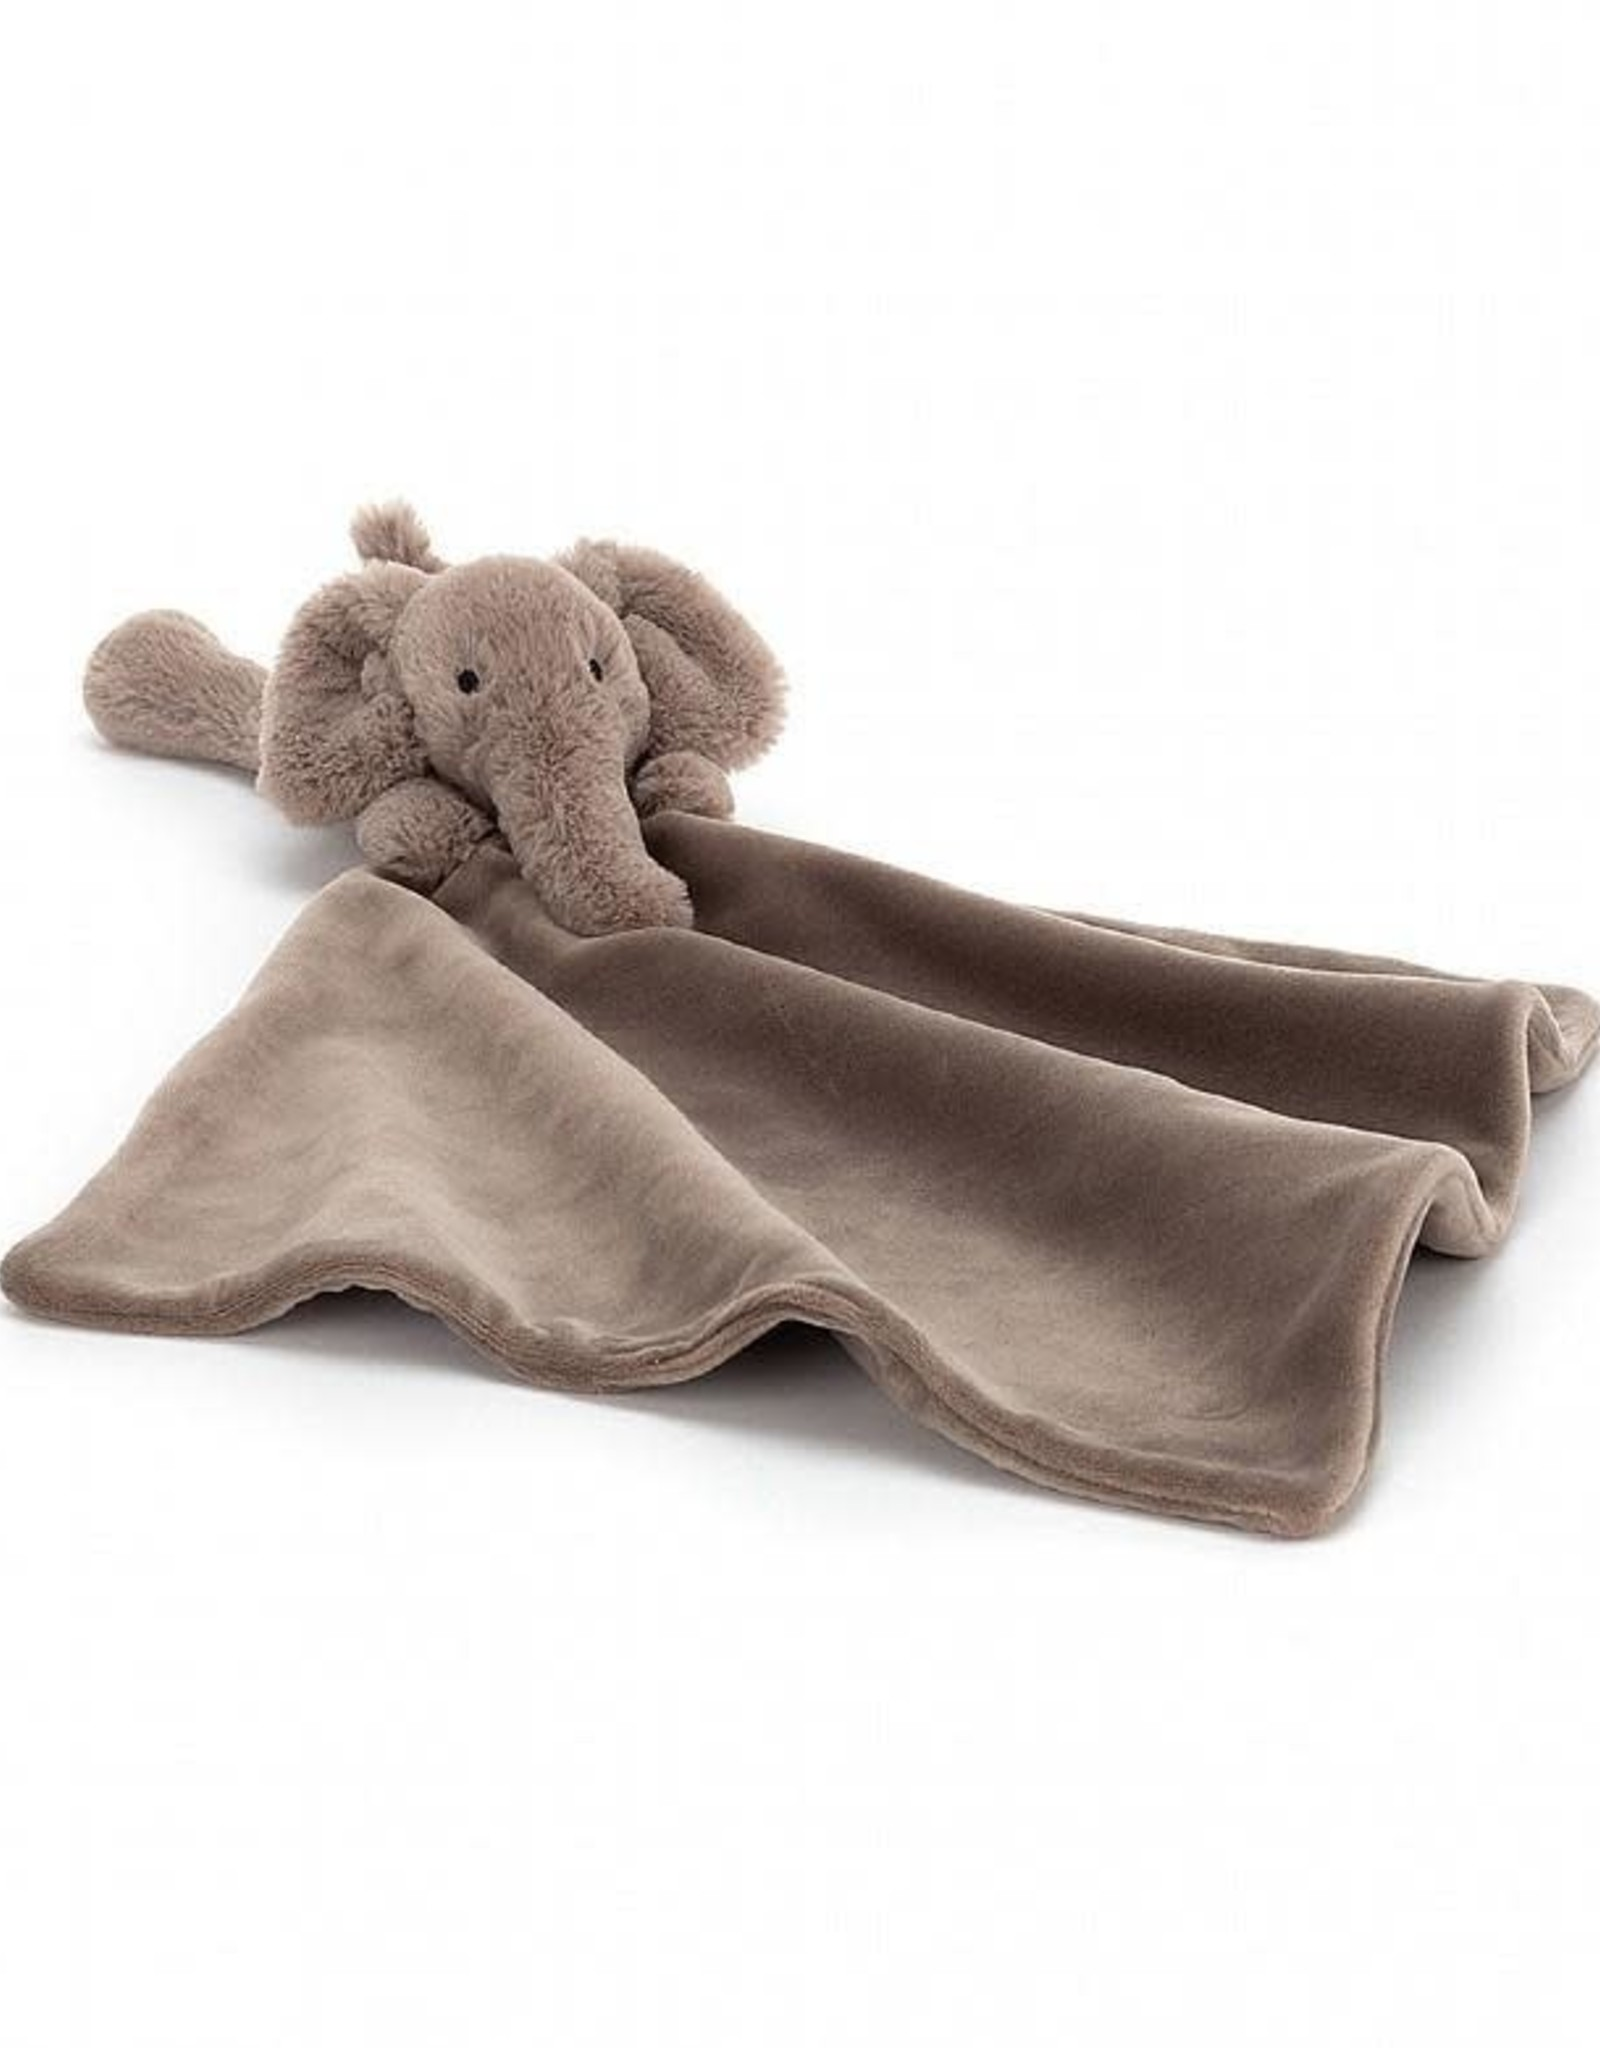 Jellycat Soother Smudge Elephant